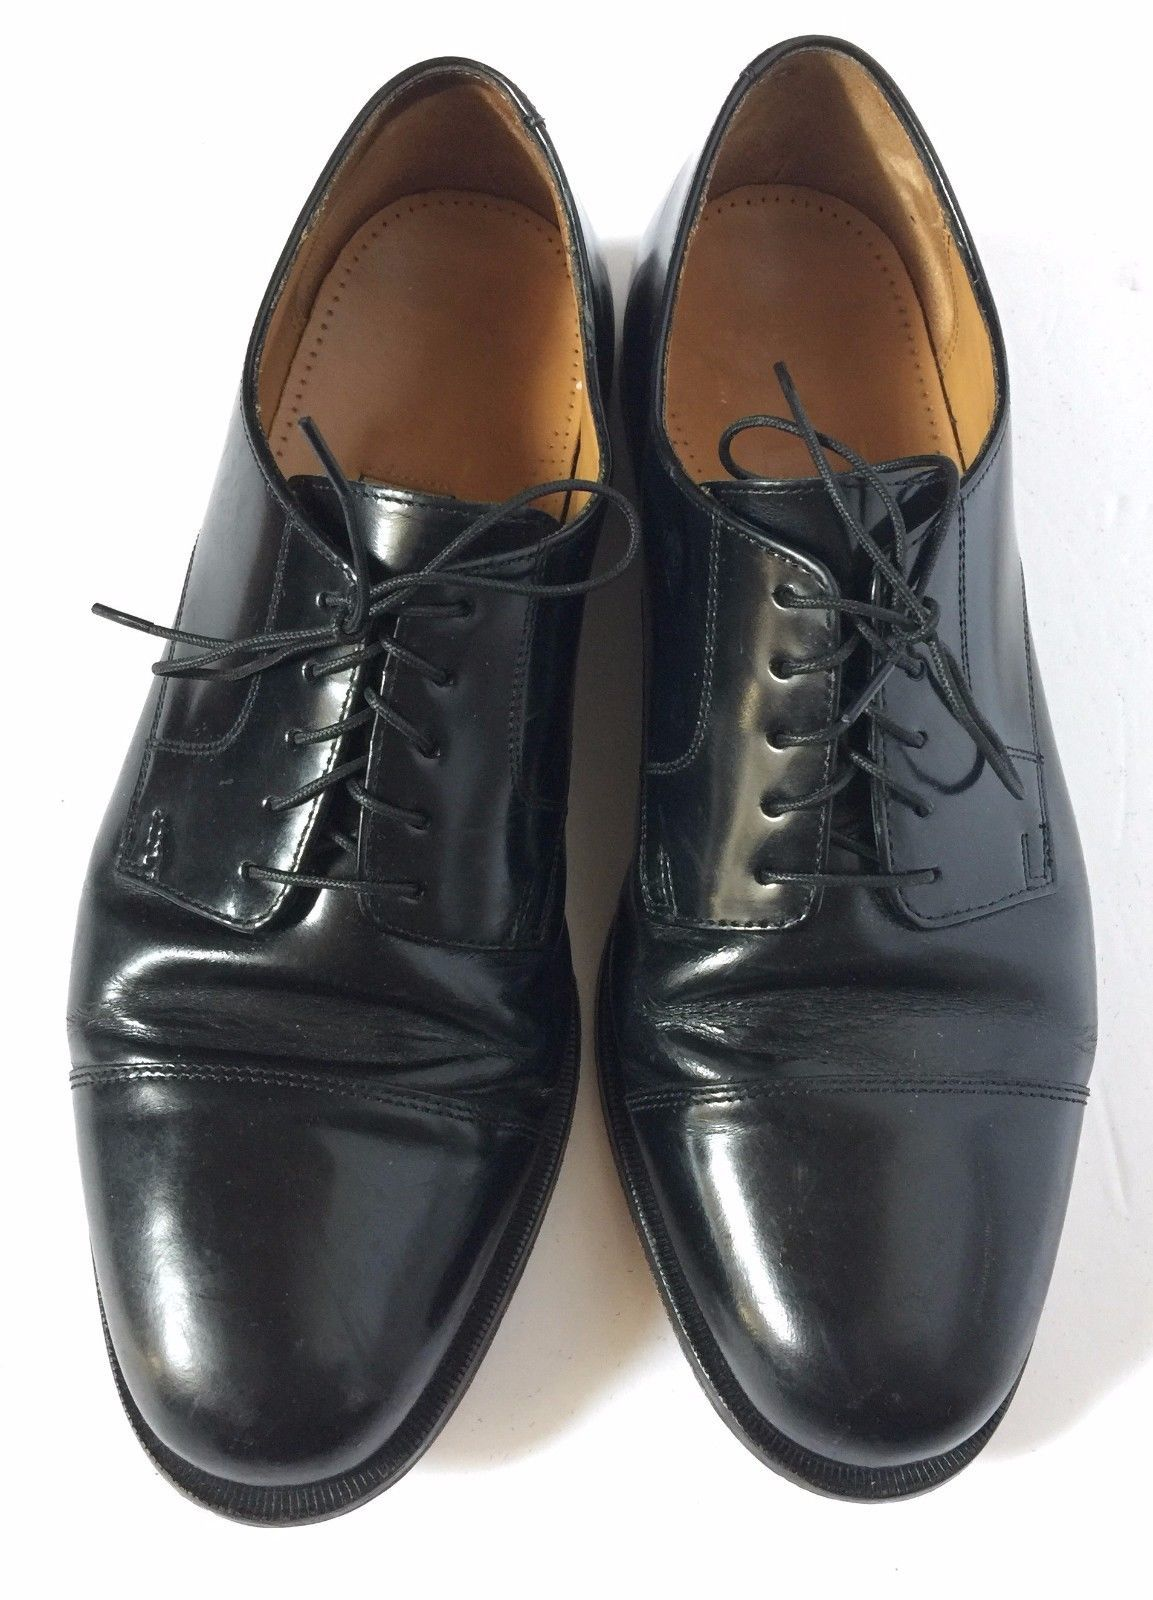 72e05a10a5e S l1600. S l1600. Previous. Mens Cole Haan Black Leather Lace Up Dress Shoes  Sz 11 EEE 3E EUC